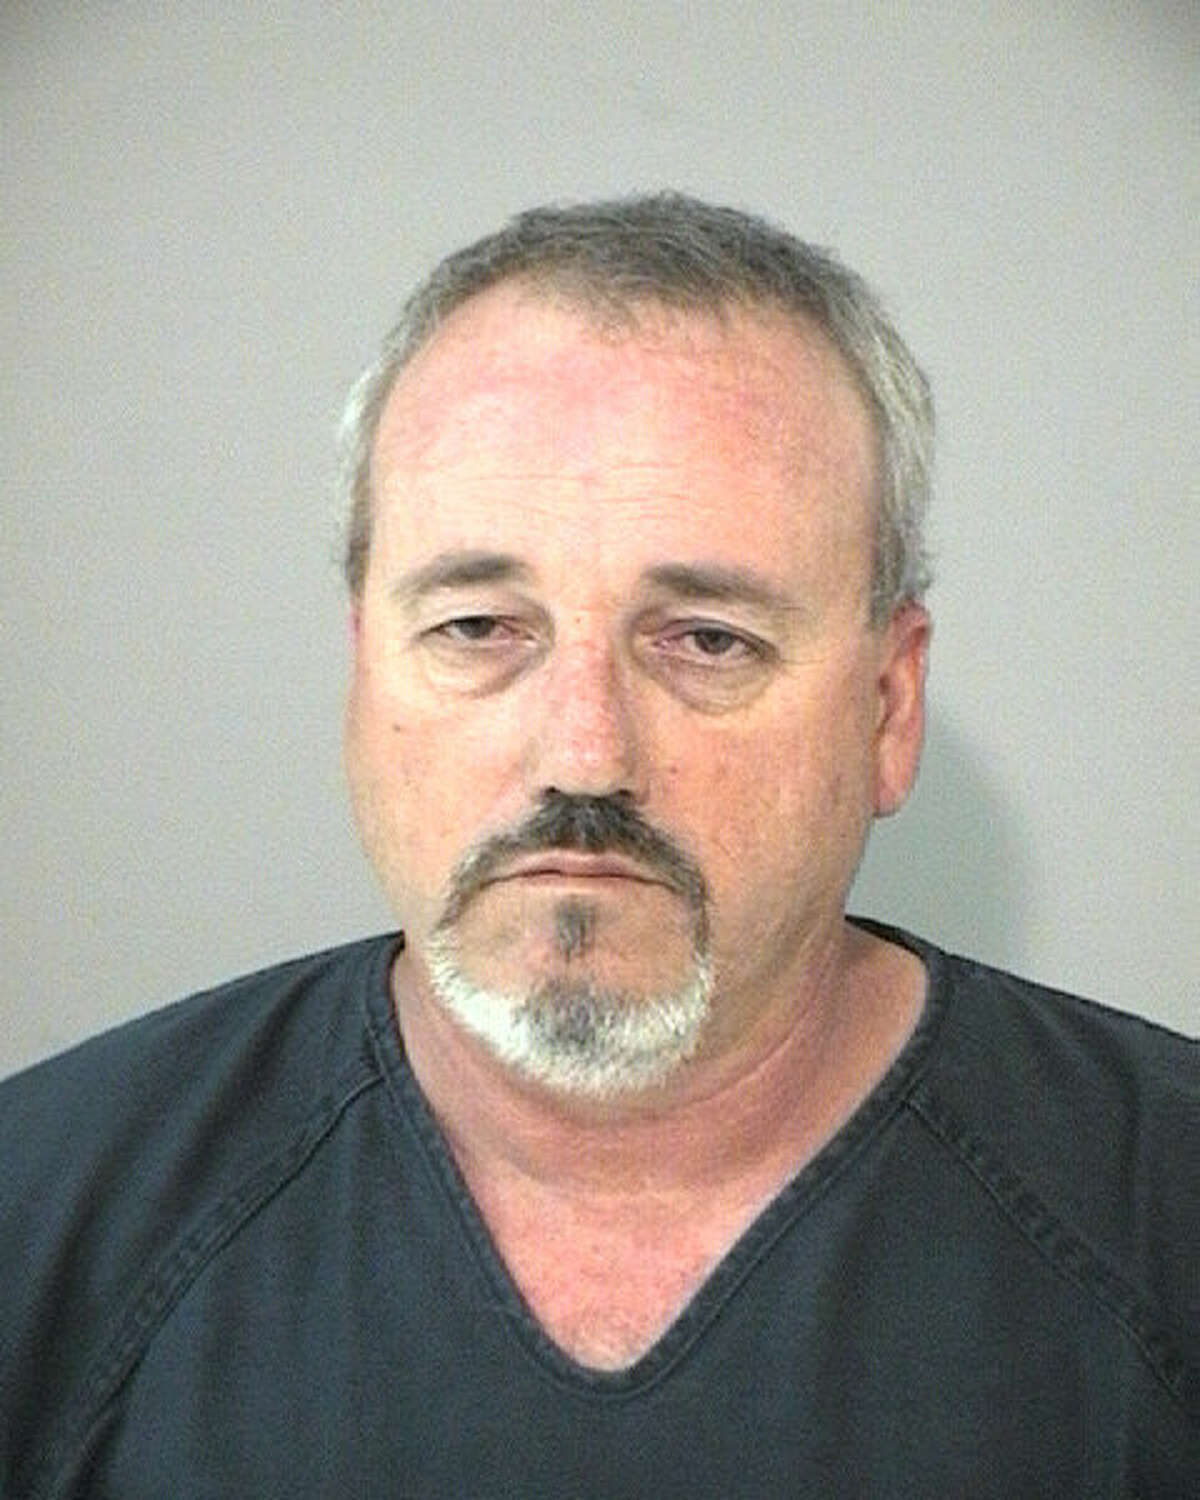 Eric Burgess, 50, of Conroe , who was charged with Attempted Sexual Assault of a Child.